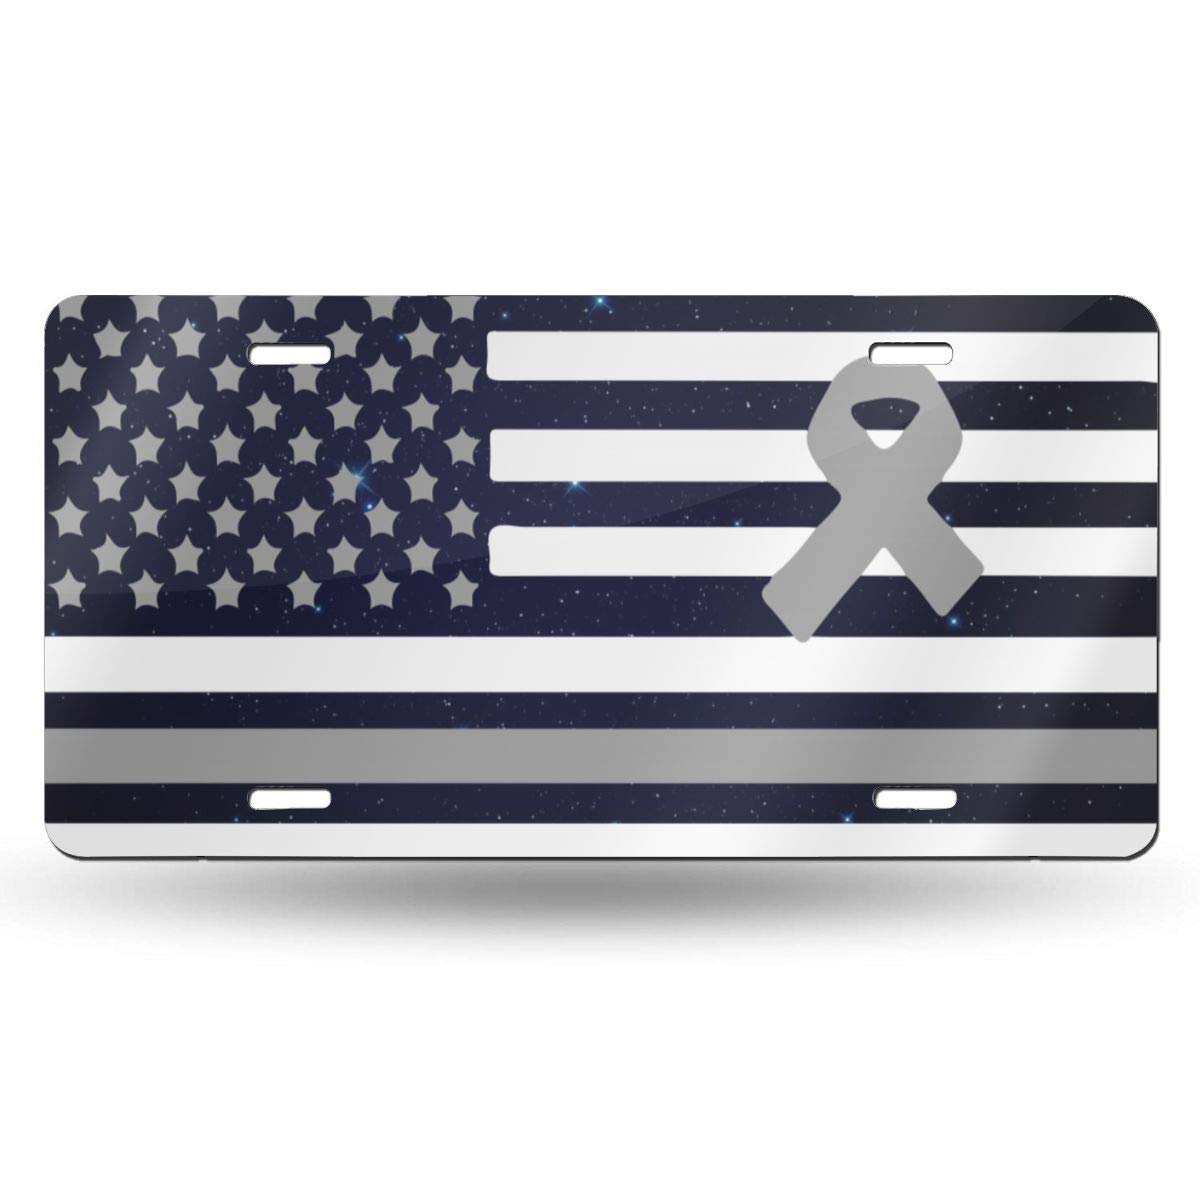 License Plate Covers Personalized Novelty Custom Decorative Metal Sign Front Car Tag for US Vehicles 12 x 6 Inch